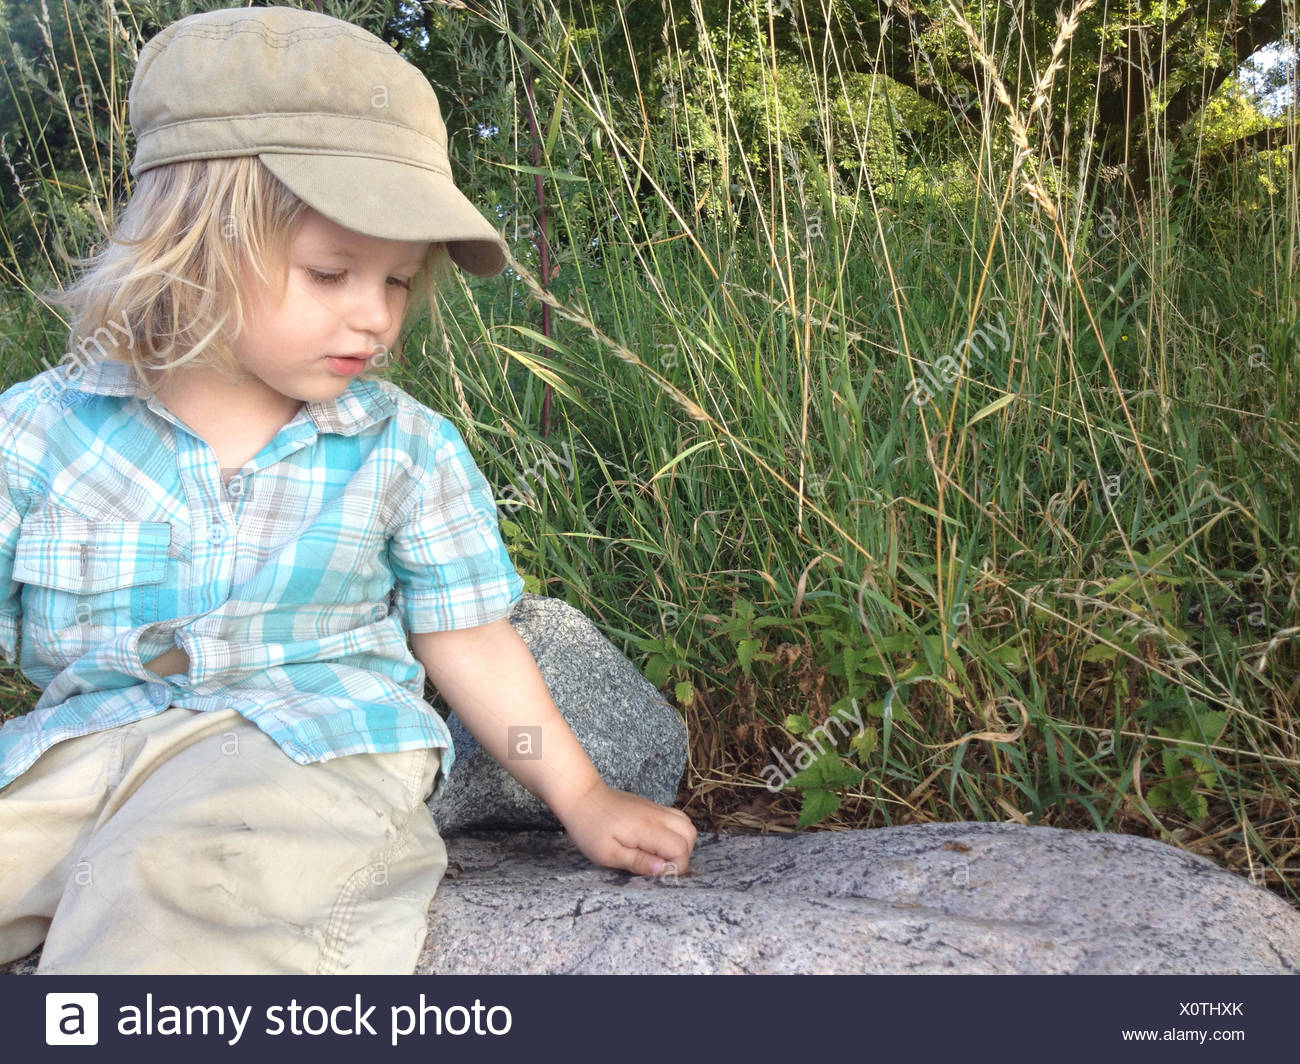 Young Boy Playing On A Rock - Stock Image